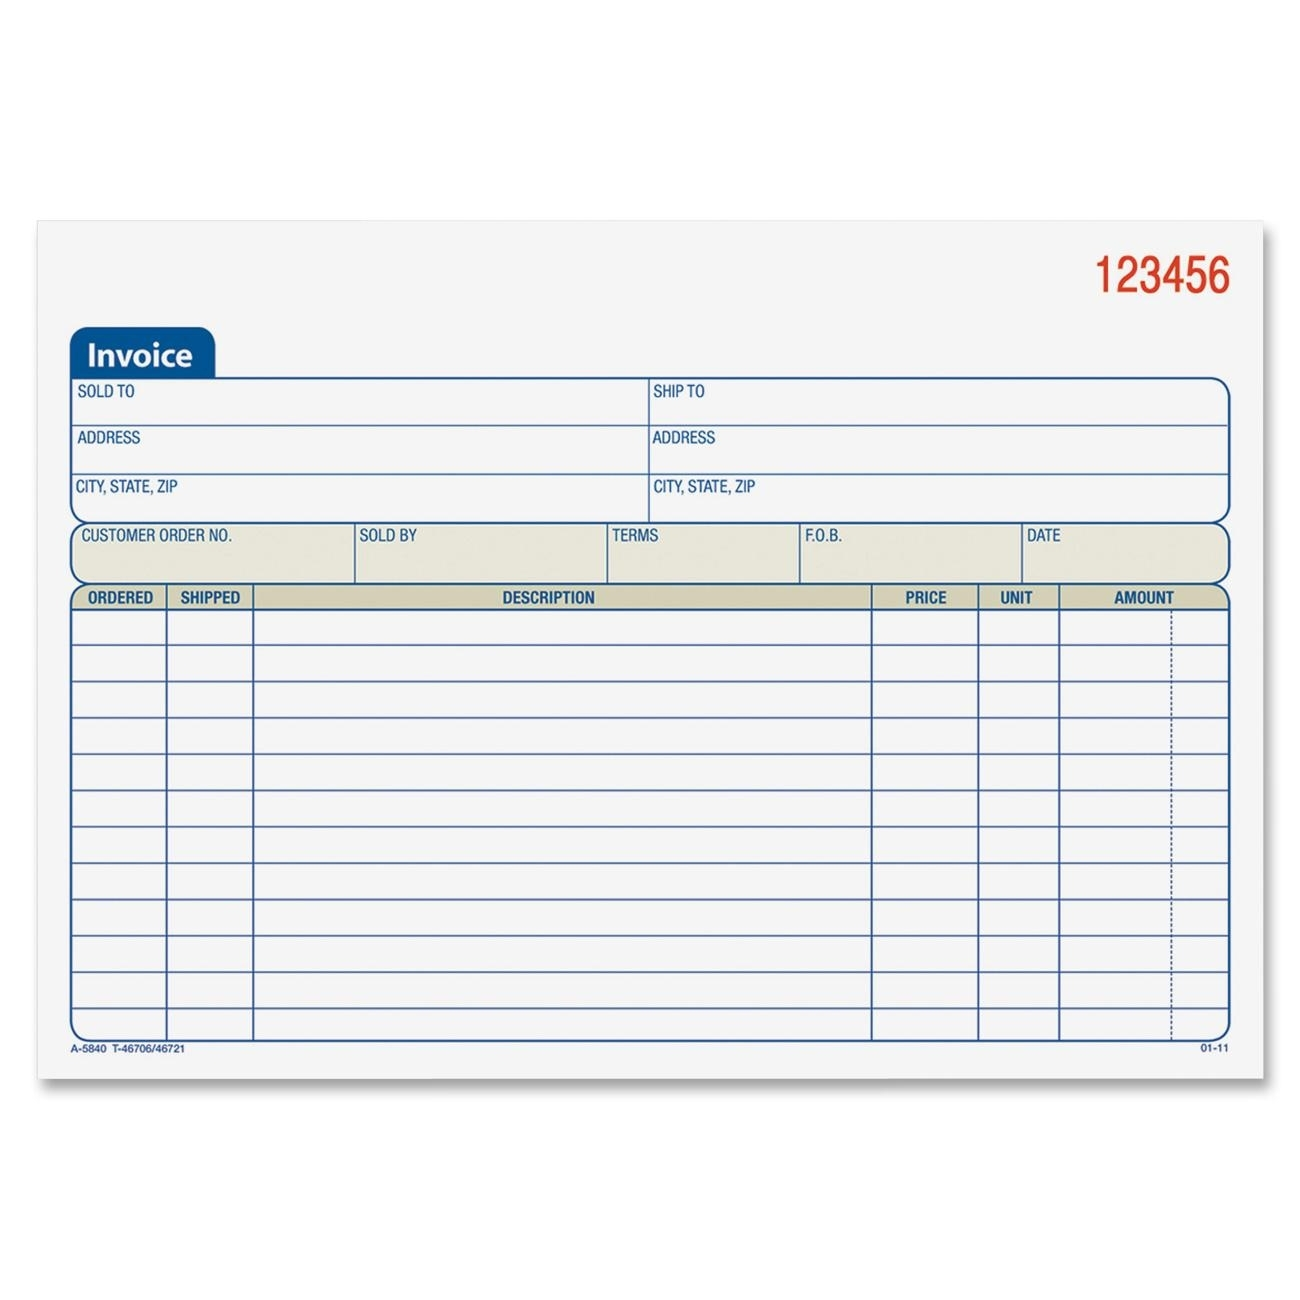 Copy Of An Invoice Template Invoice Template Ideas - Copy of blank invoice